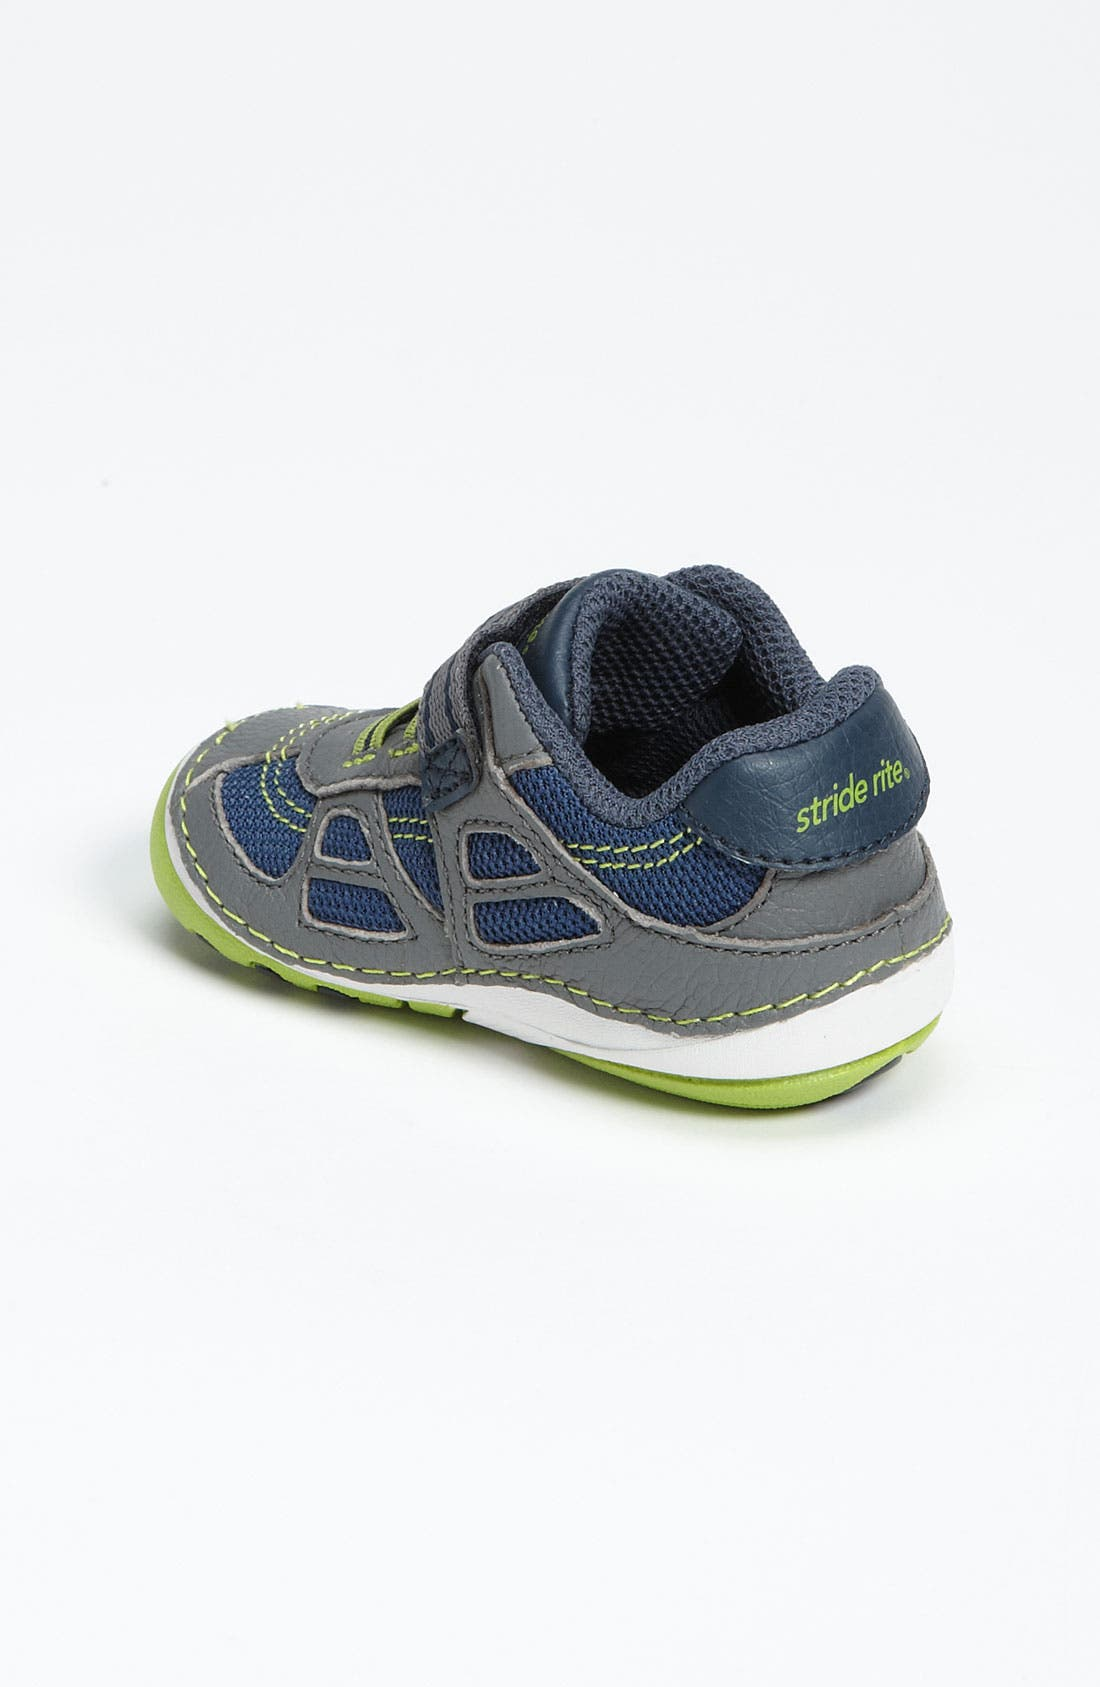 Alternate Image 2  - Stride Rite 'Conner' Sneaker (Baby & Walker)